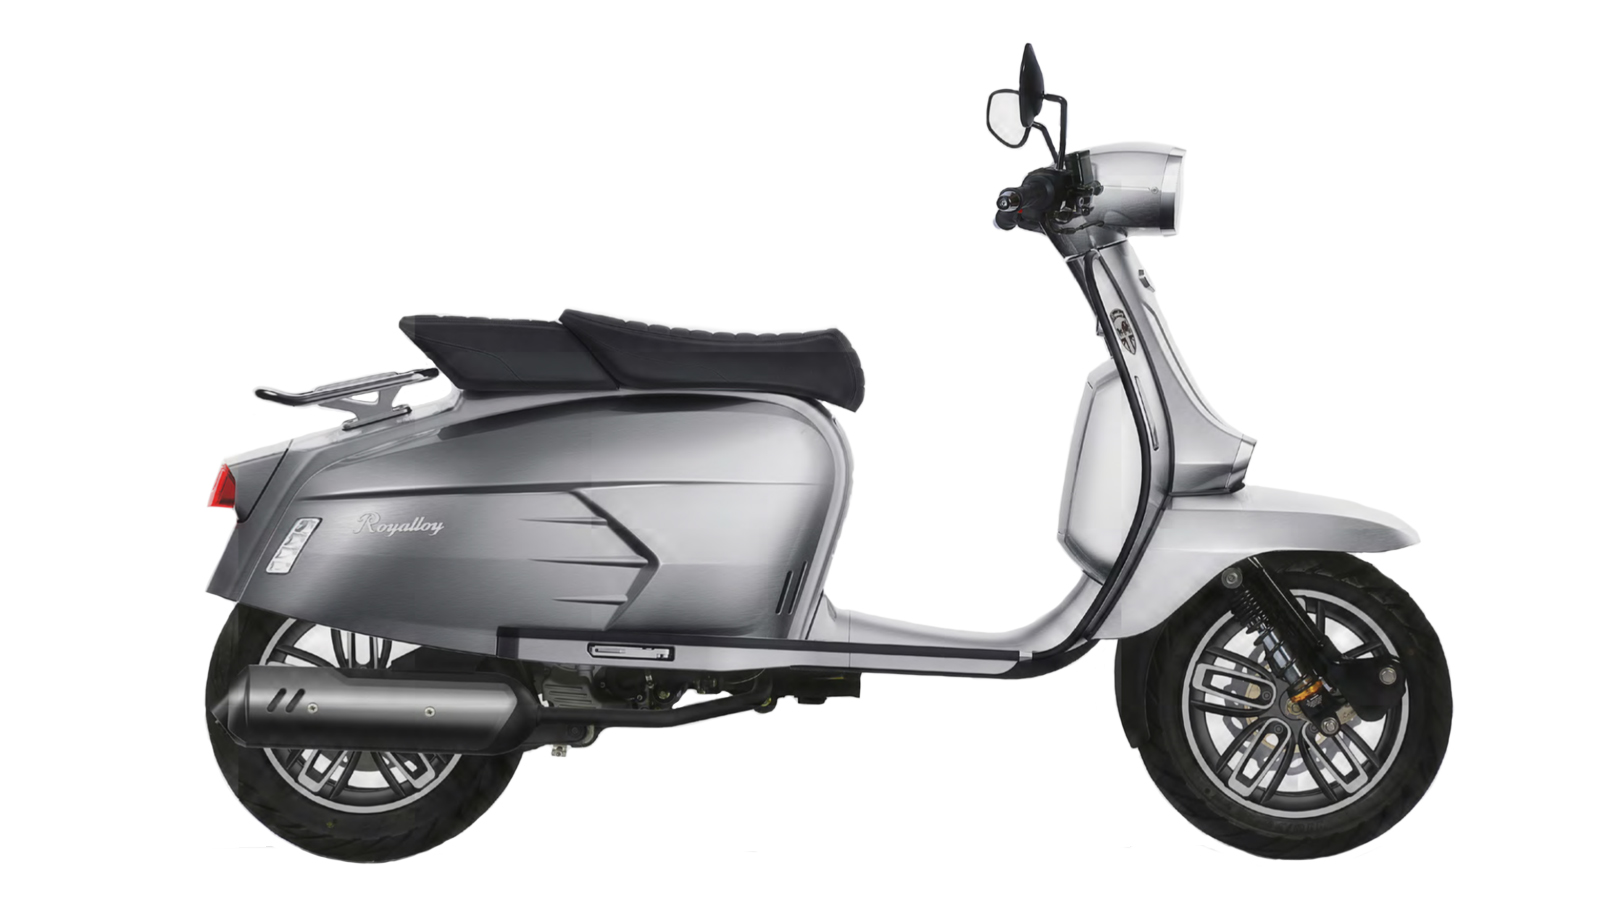 royal alloy gp 125 ac ital scooters. Black Bedroom Furniture Sets. Home Design Ideas